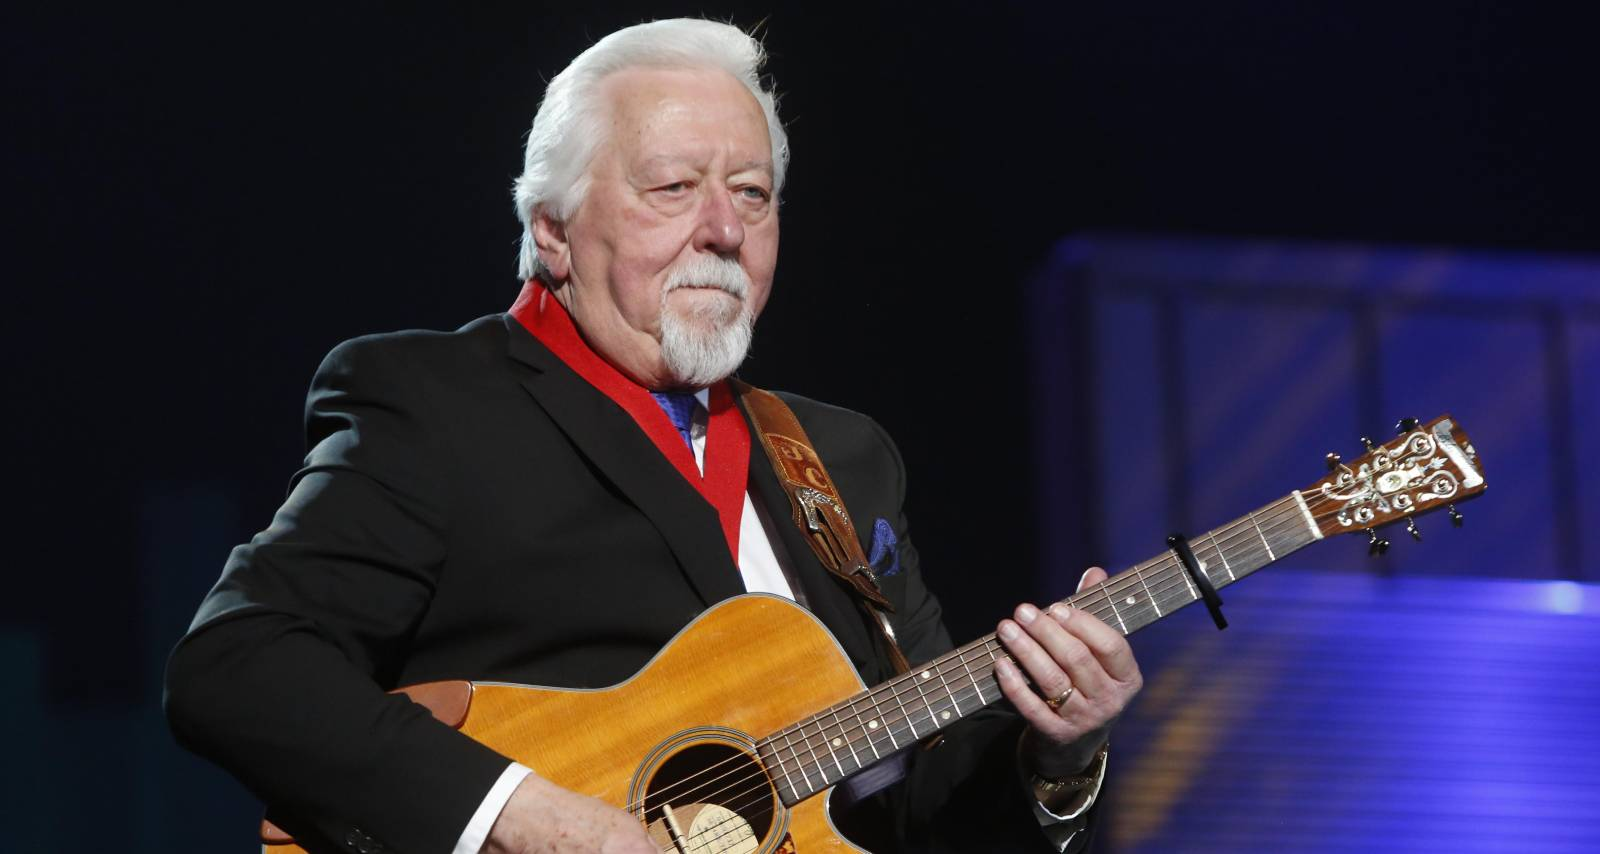 Jimmy Capps Wiki, Age, Family, Parents, Siblings, Wives, Son and Facts About the Grand Ol' Opry Guitarist Who Died at 81